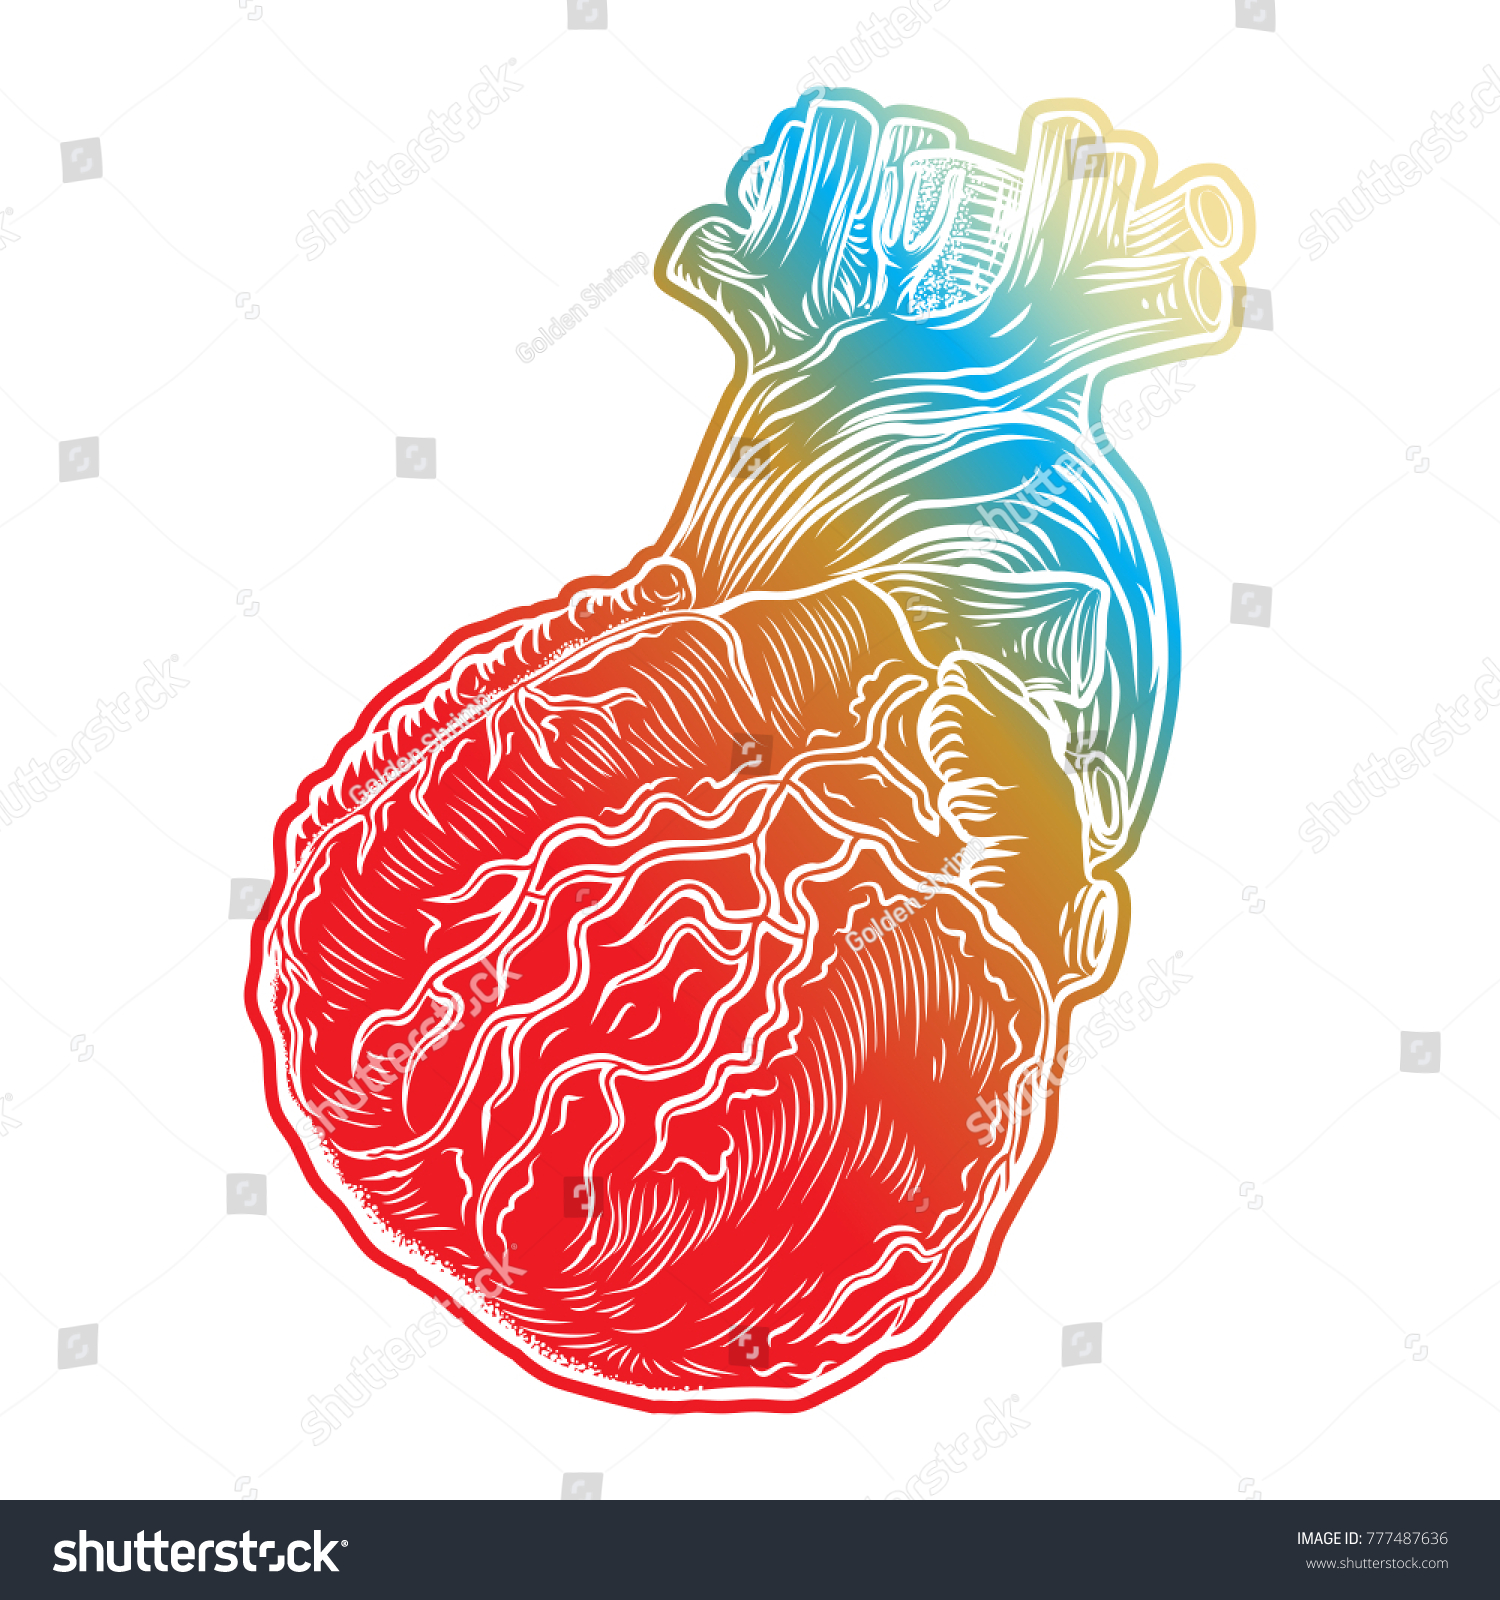 Sketch Human Heart Hand Drawn Anatomical Stock Vector 2018